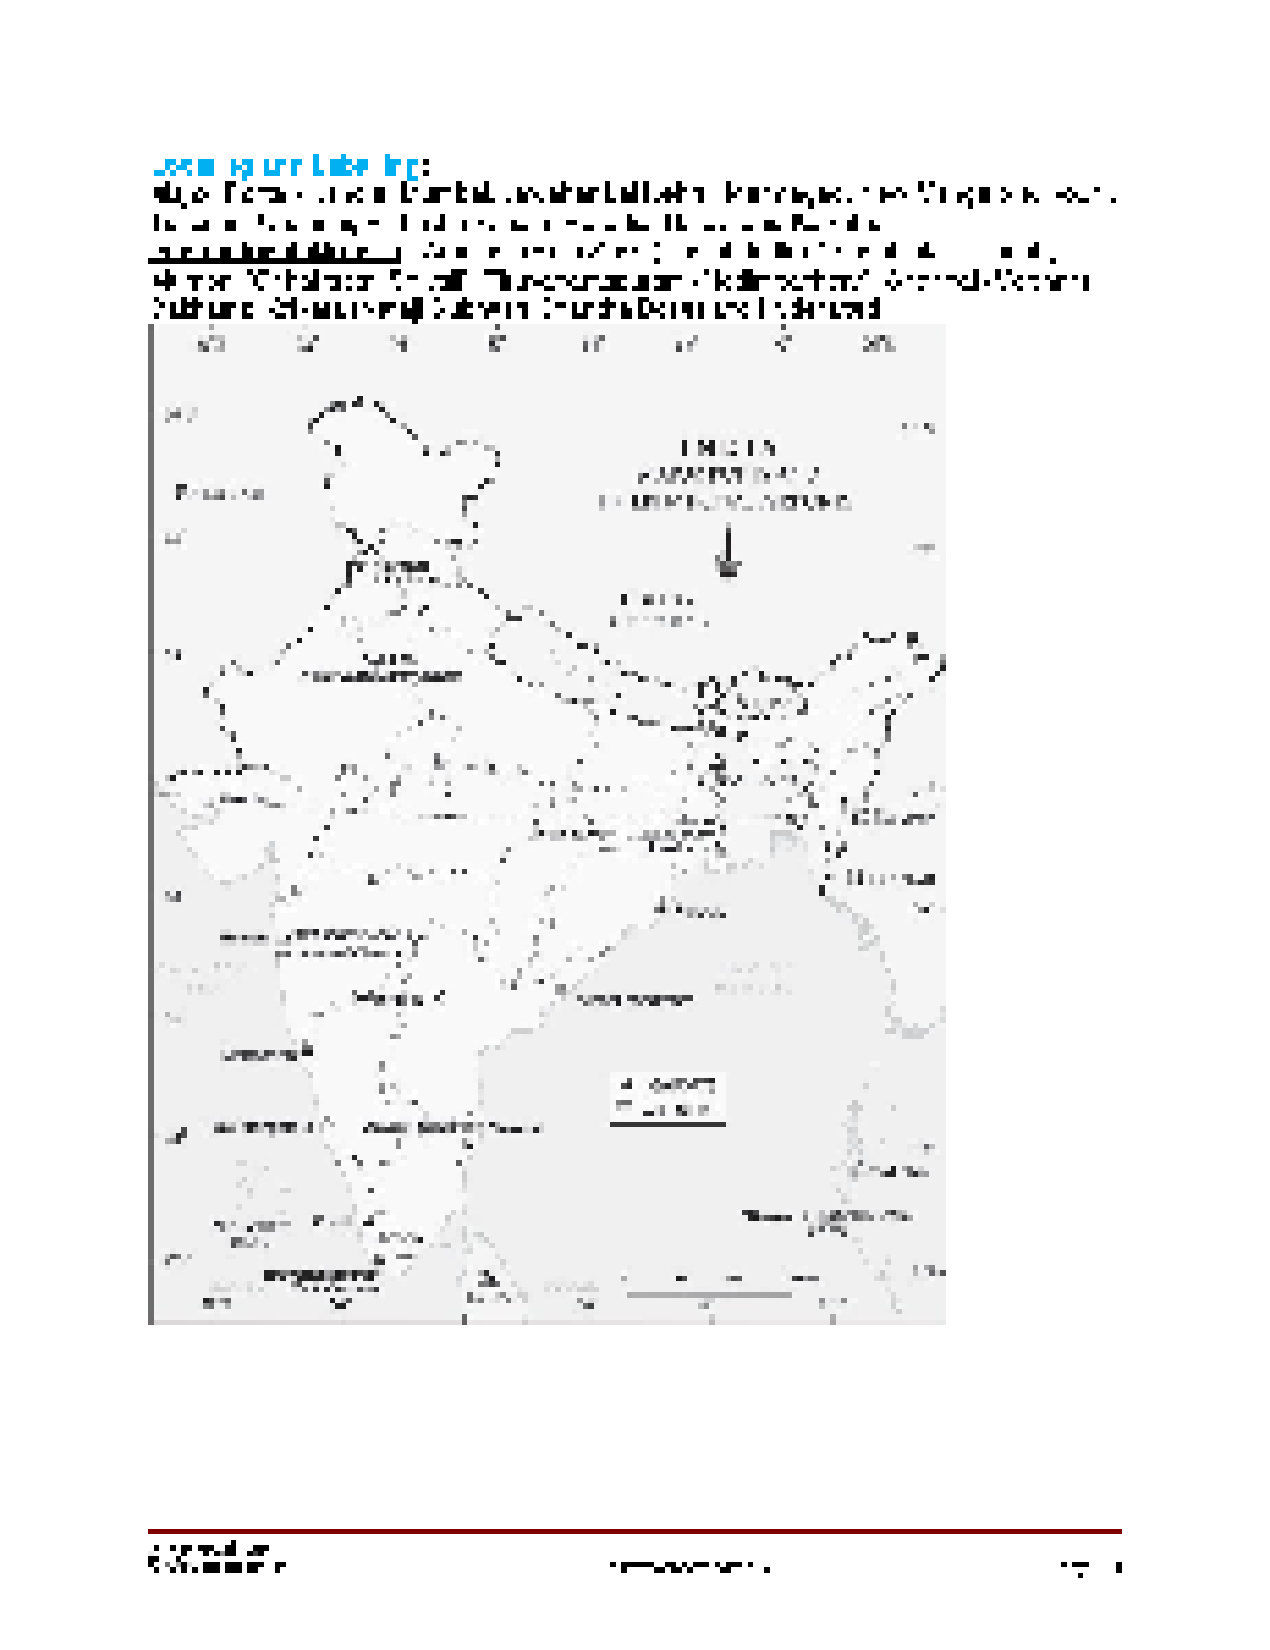 Solution geography outline political map of india studypool geographyoutline political map of indiaidentification only major soil typesryaveer singhpage 1chapter 3 water resourceslocating and labelling important thecheapjerseys Gallery